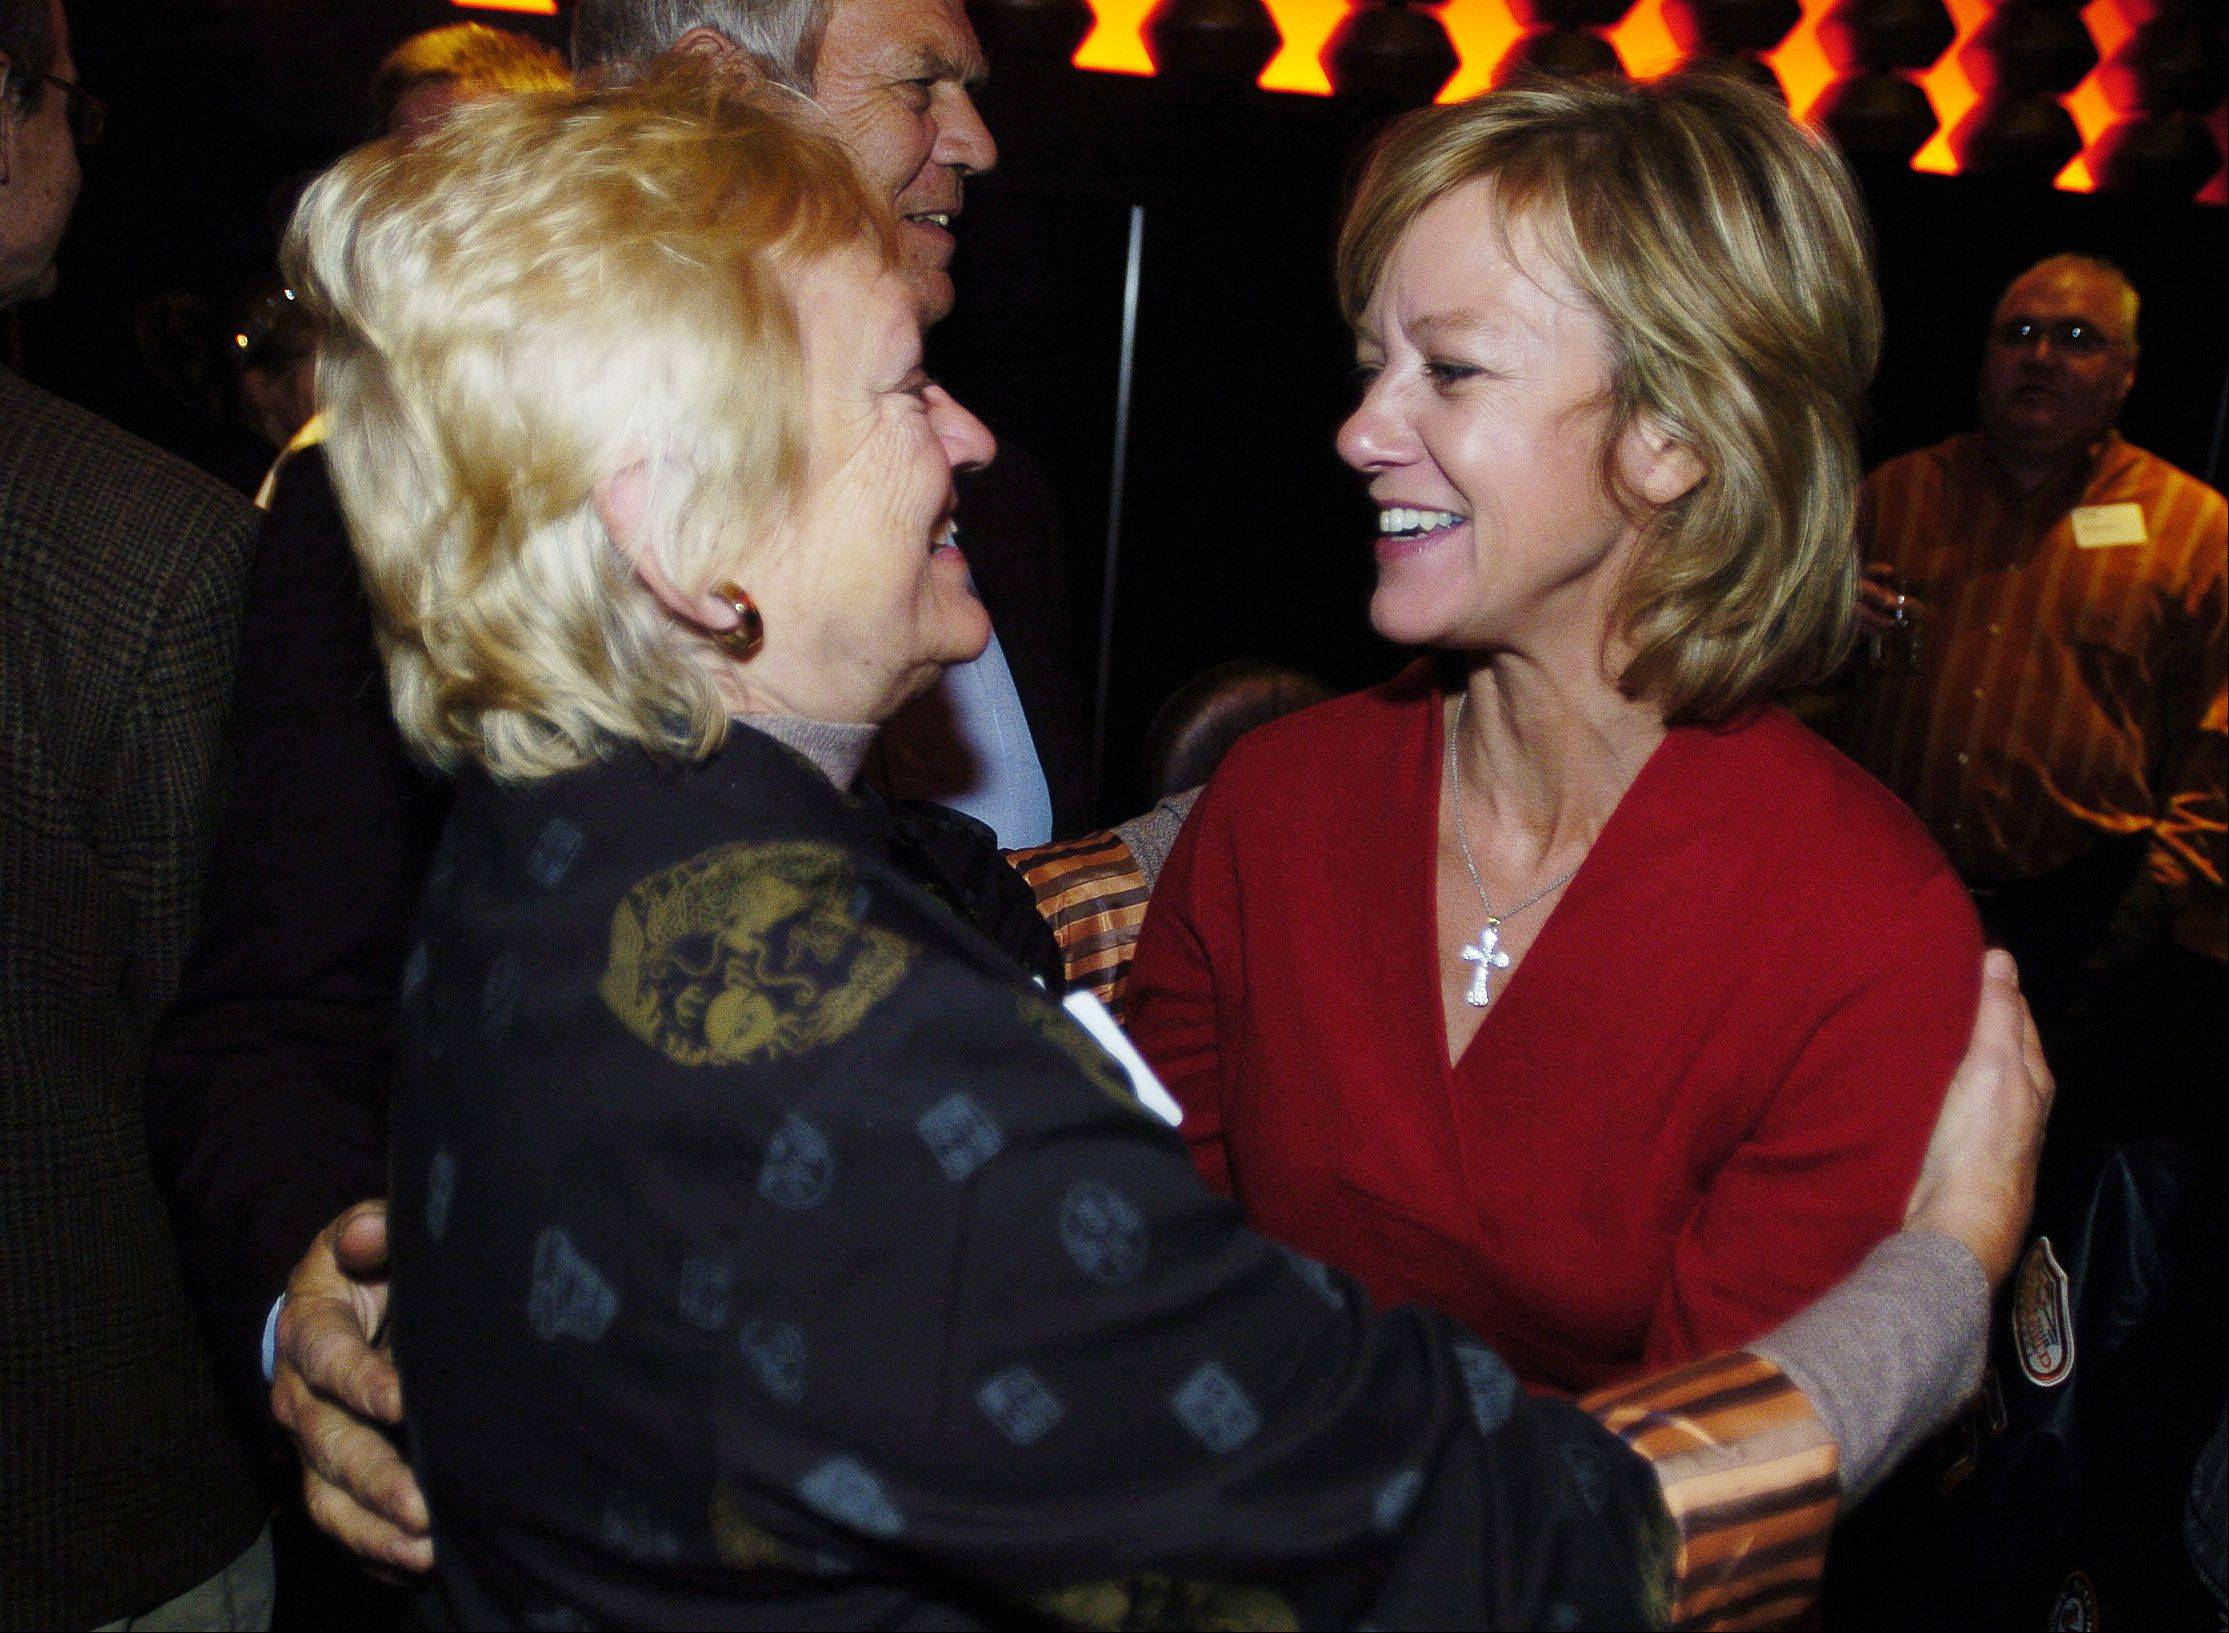 Ginger Johnson of West Chicago ,left, hugs 42nd House District candidate Jeanne Ives at Wok n' Fire in Wheaton Tuesday. Ives won the seat.